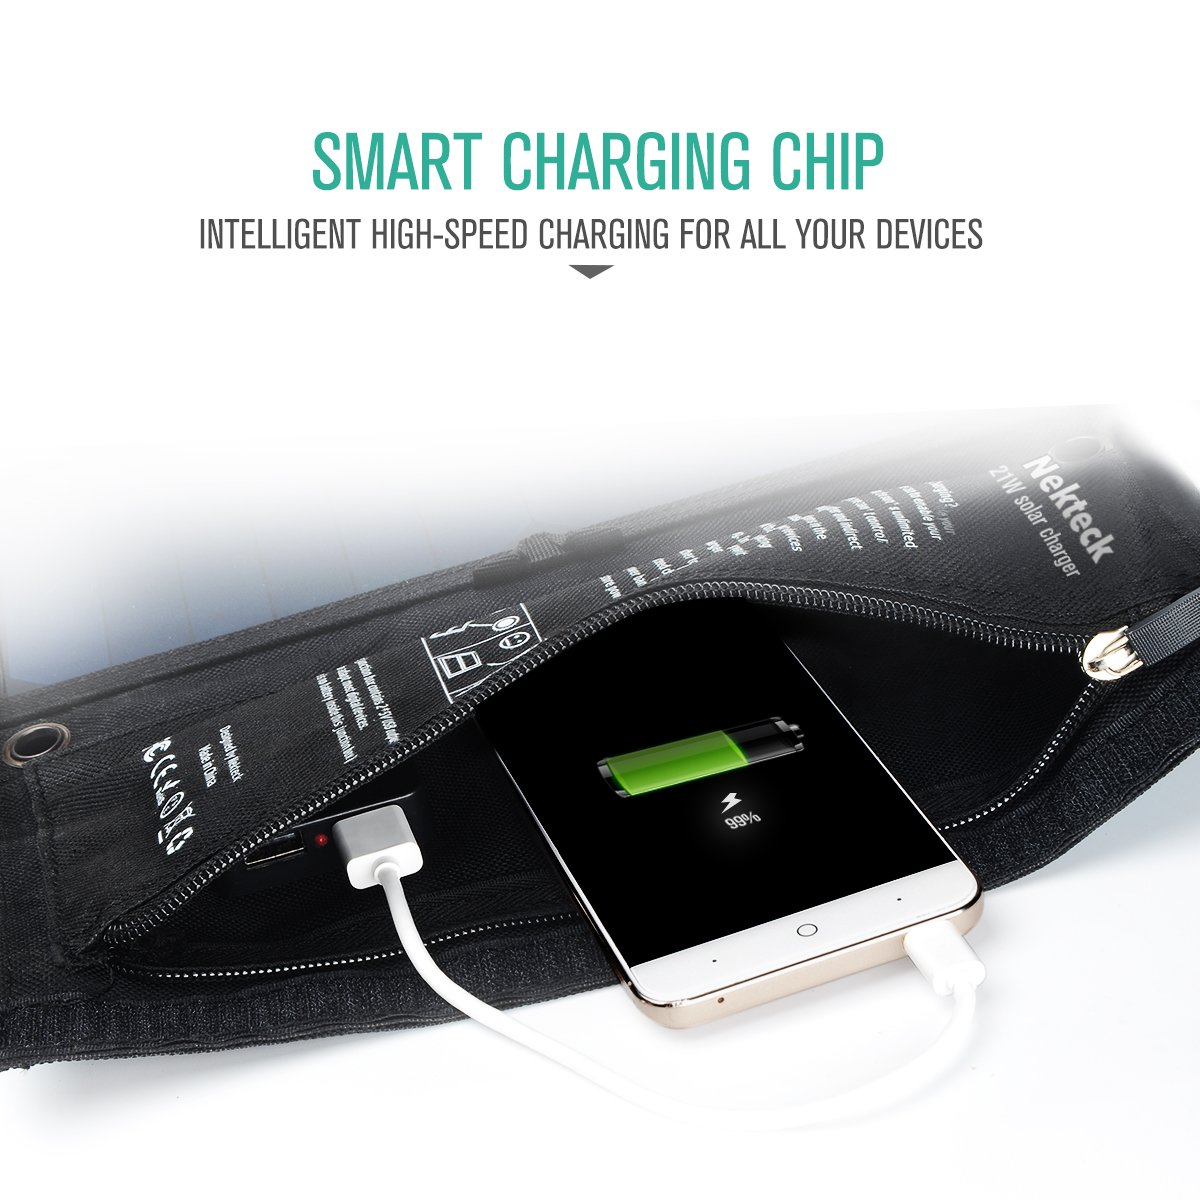 2-Port USB Charger made our list of camping gifts couples will love and great gifts for couples who camp